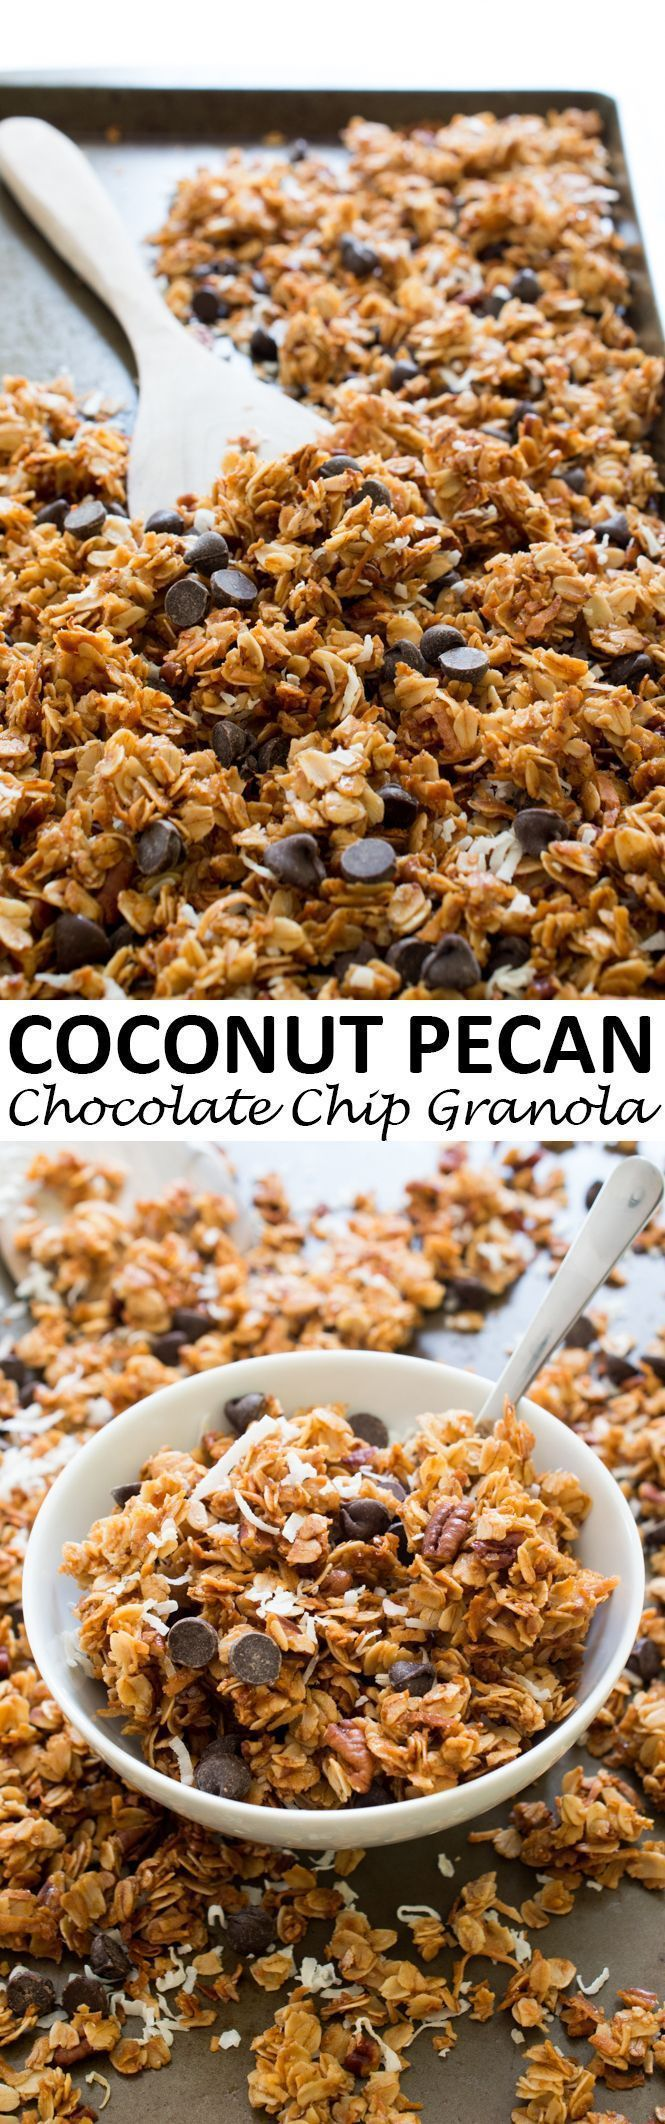 5 Ingredient Coconut Pecan Chocolate Chip Granola. Great for breakfast or as a snack. So much better than store-bought! | chefsavvy.com